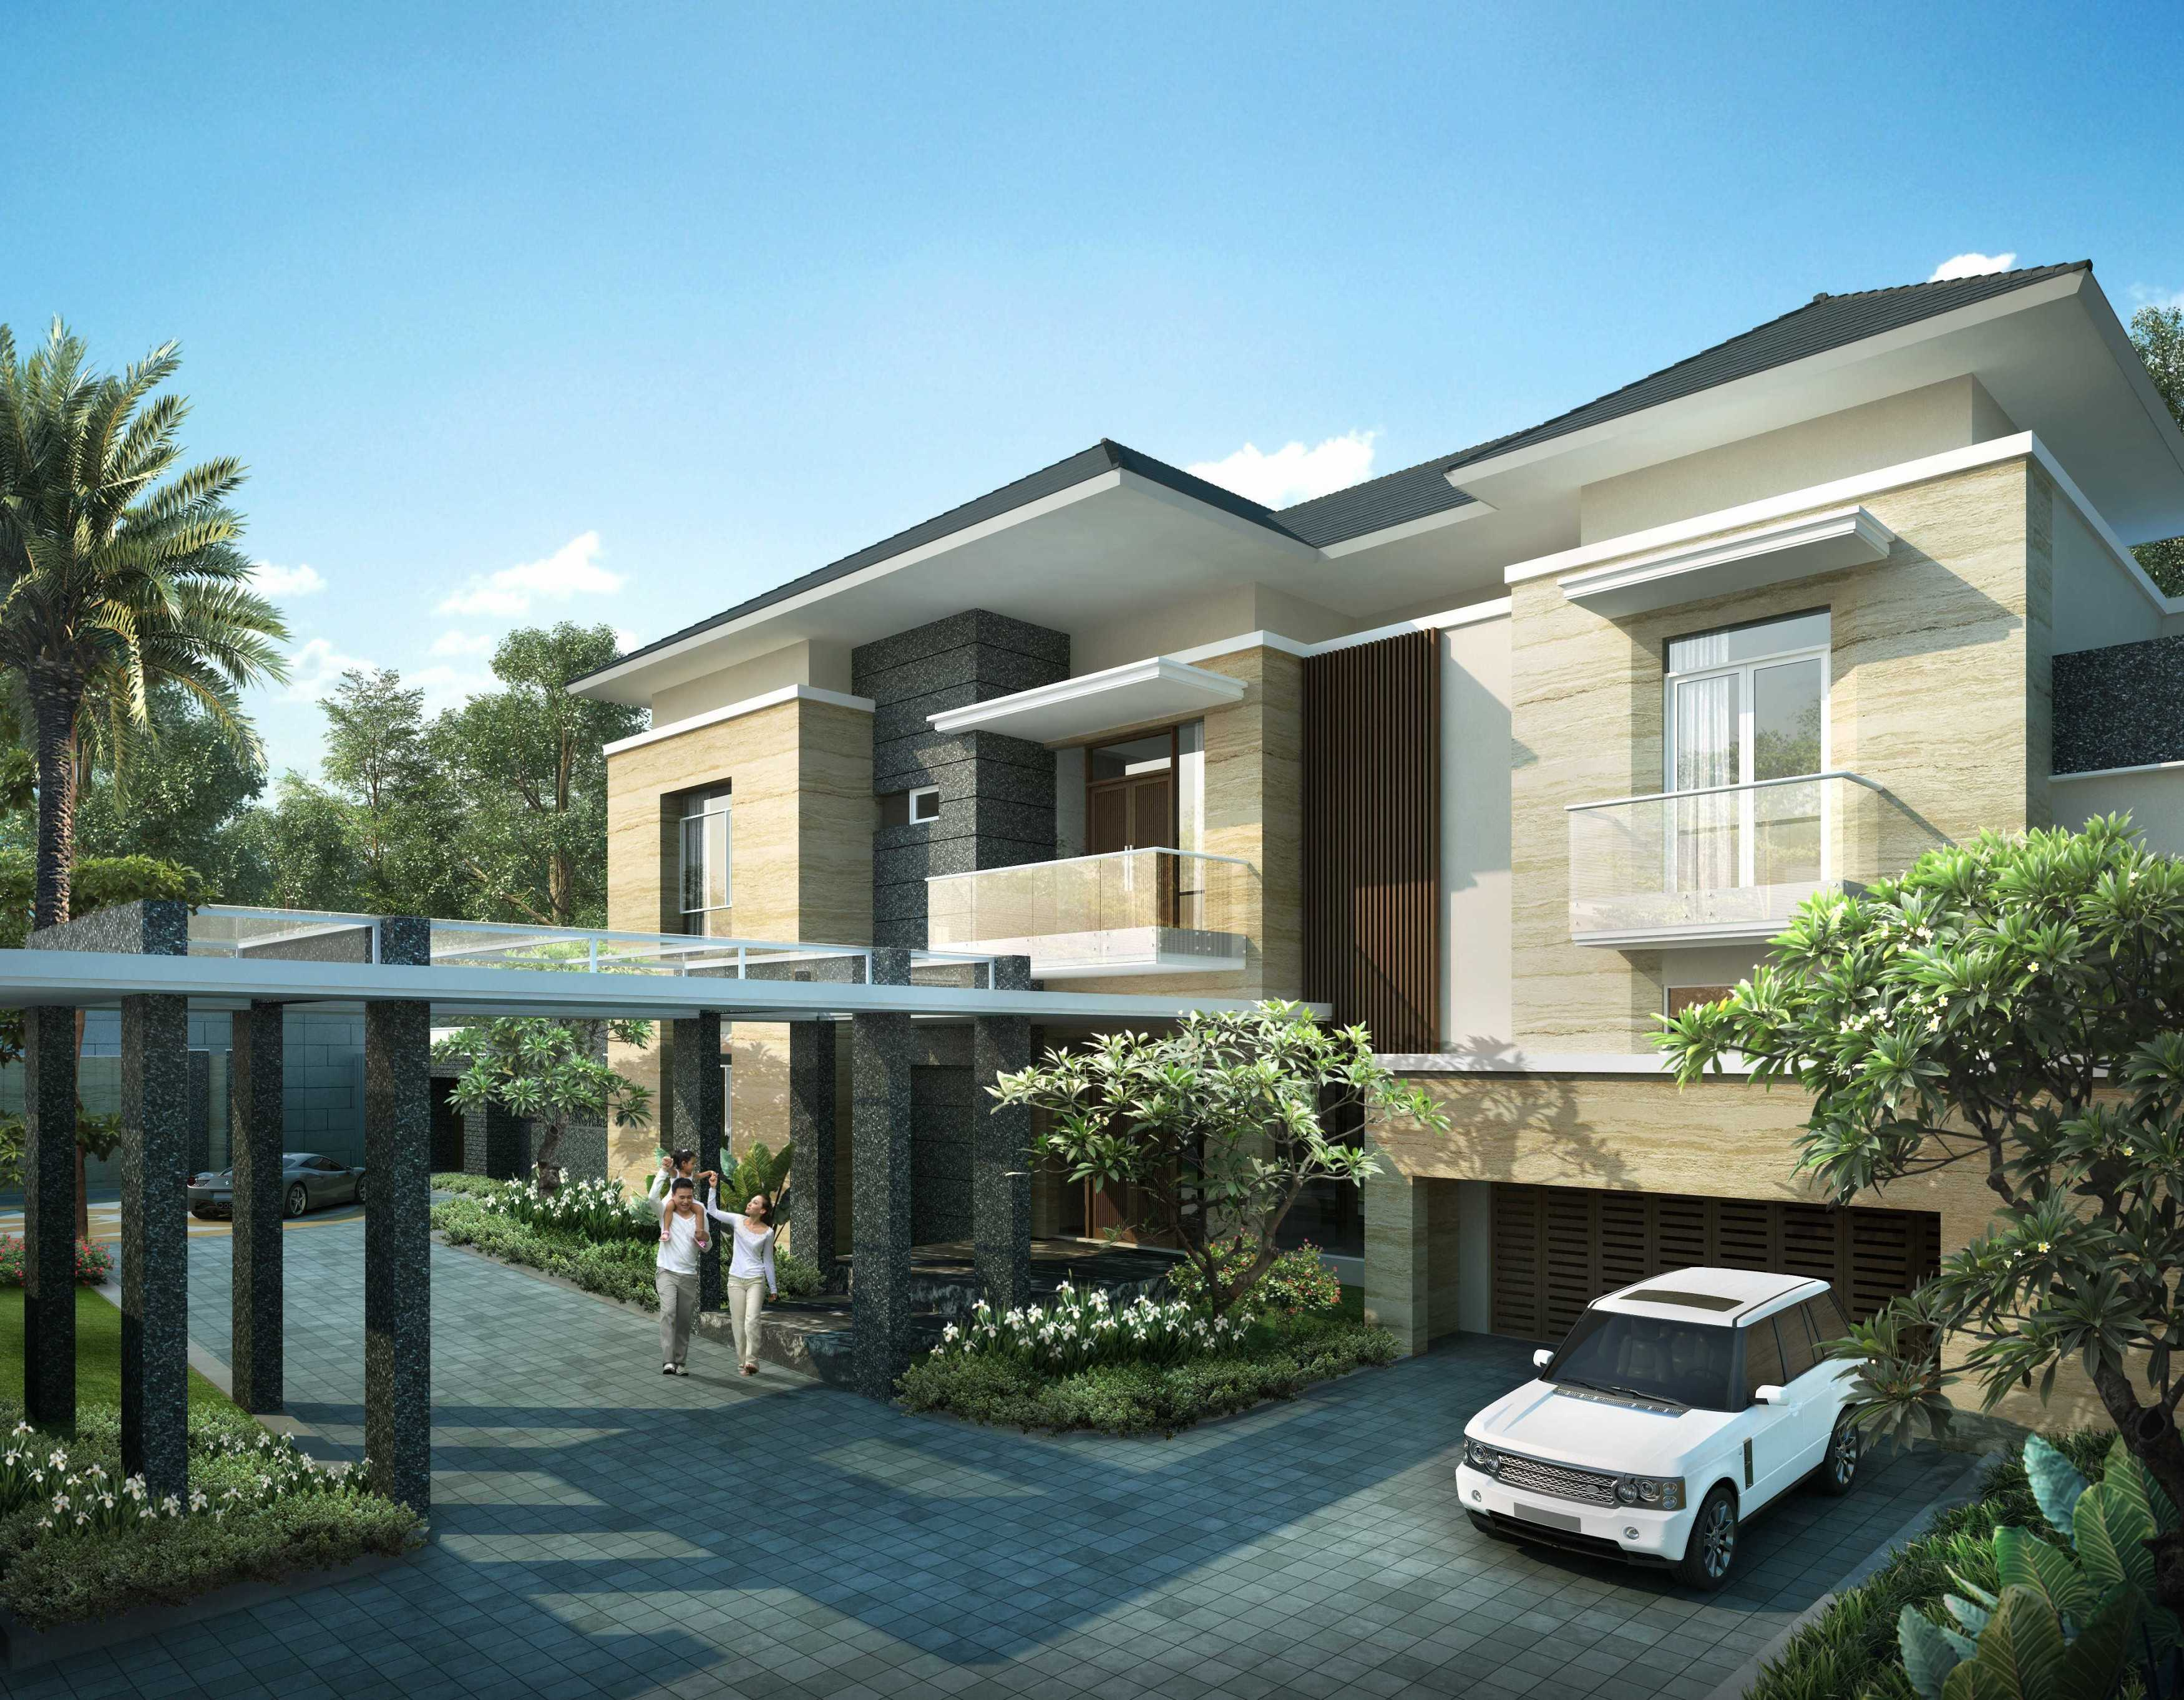 Subject Architecture Project Bougenville (Fasade Development) Makassar, Kota Makassar, Sulawesi Selatan, Indonesia Makassar, Kota Makassar, Sulawesi Selatan, Indonesia Front Perspective 2   76941